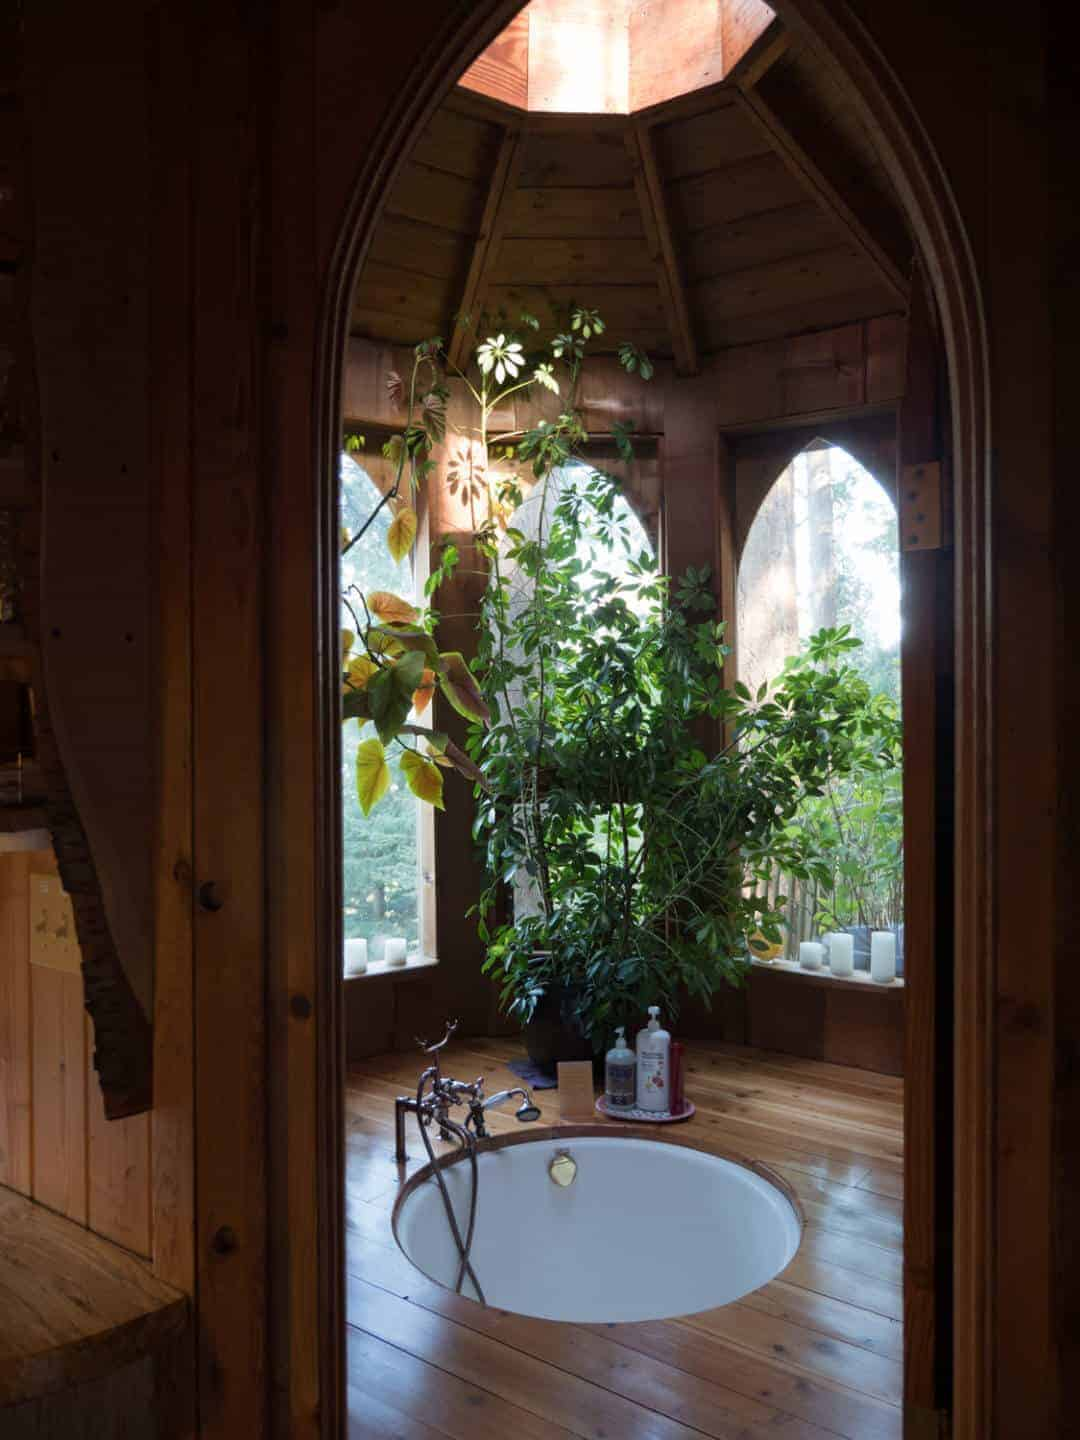 The Tub room at the Forest House on Orcas Island